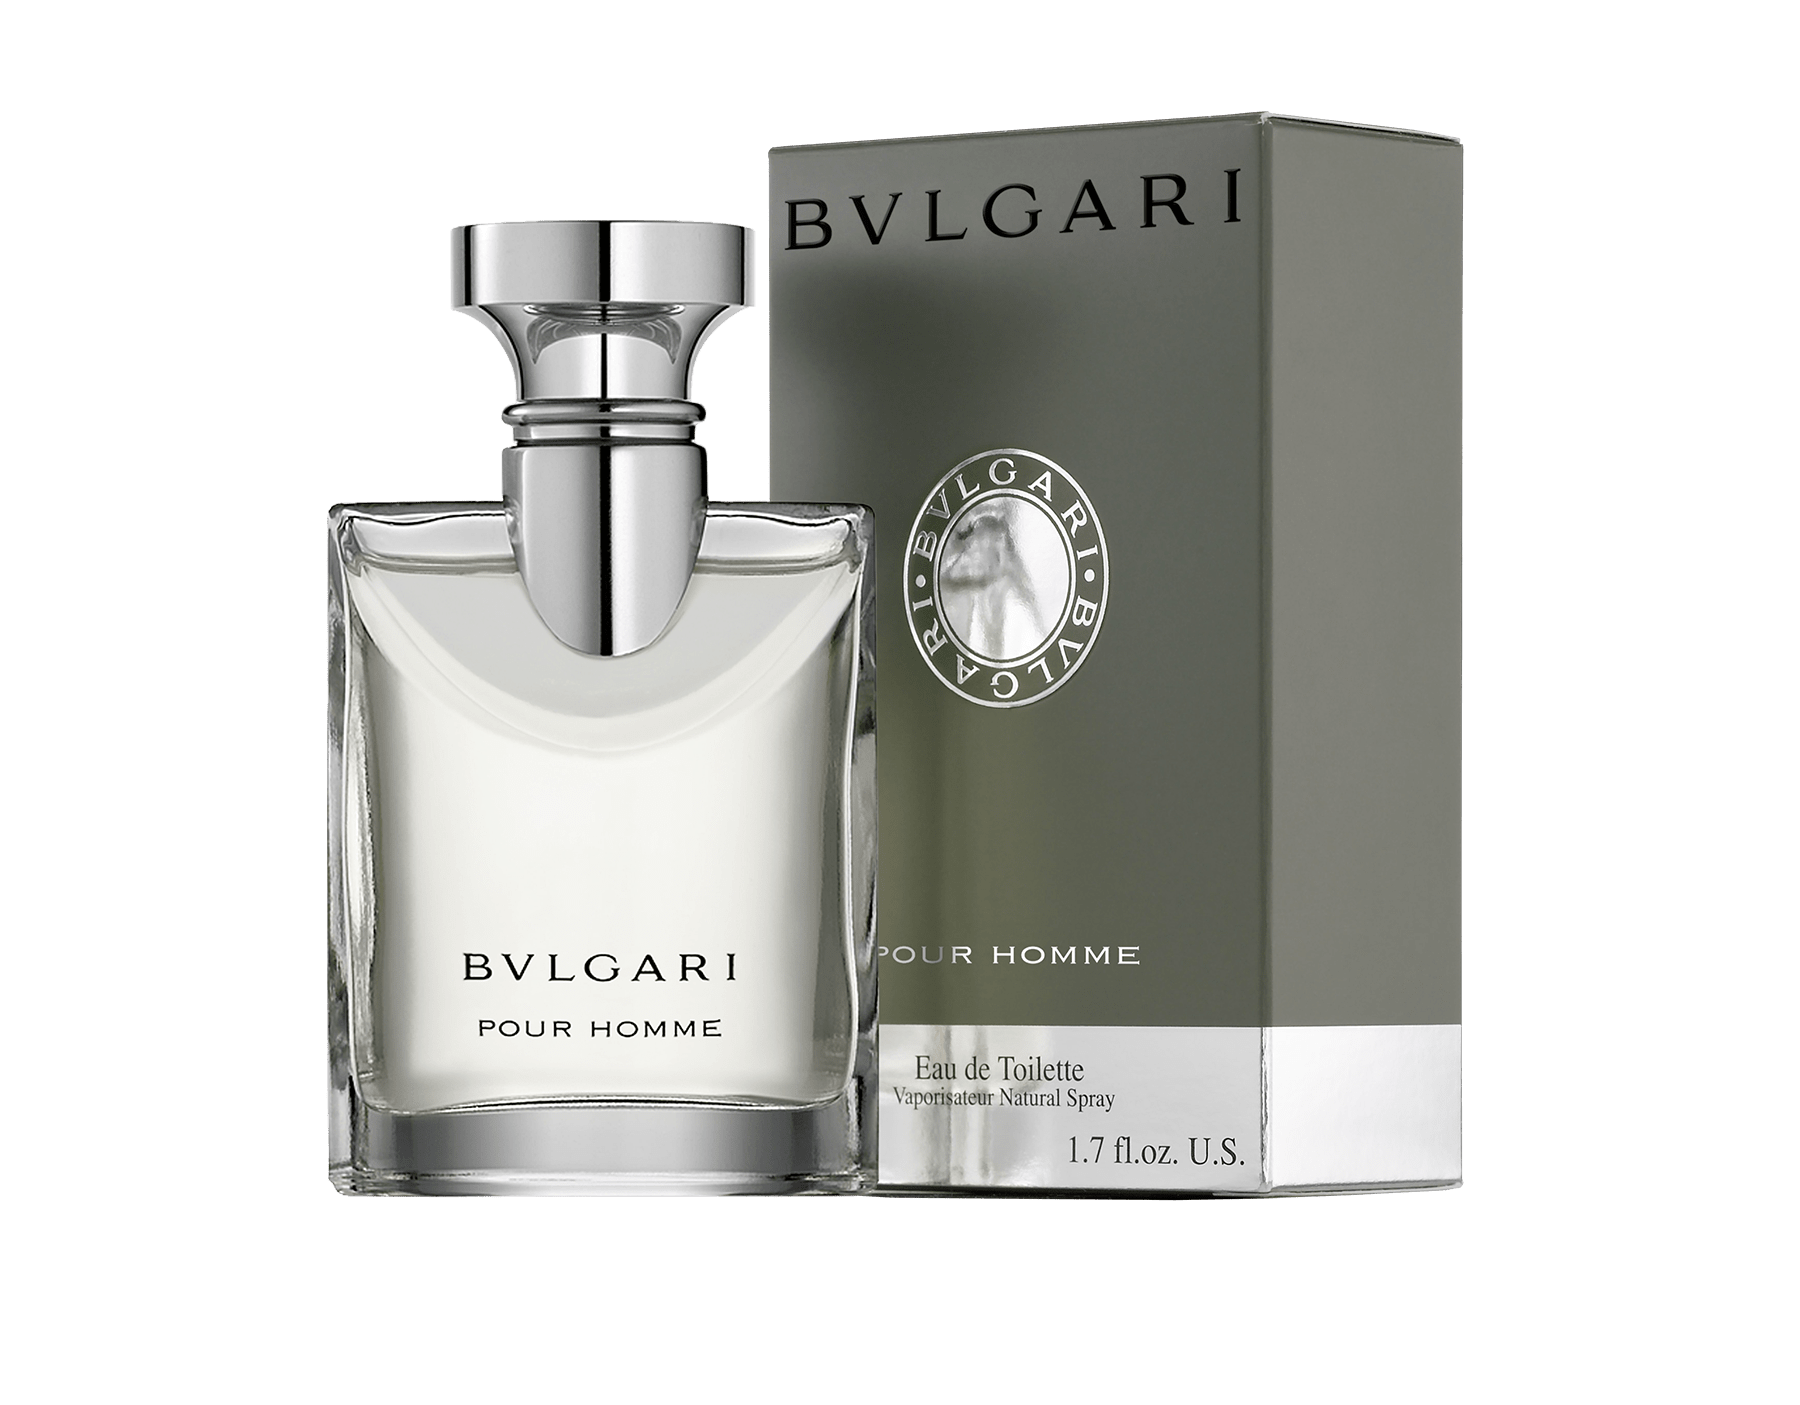 A contemporary and classic fragrance for men 83110 image 2